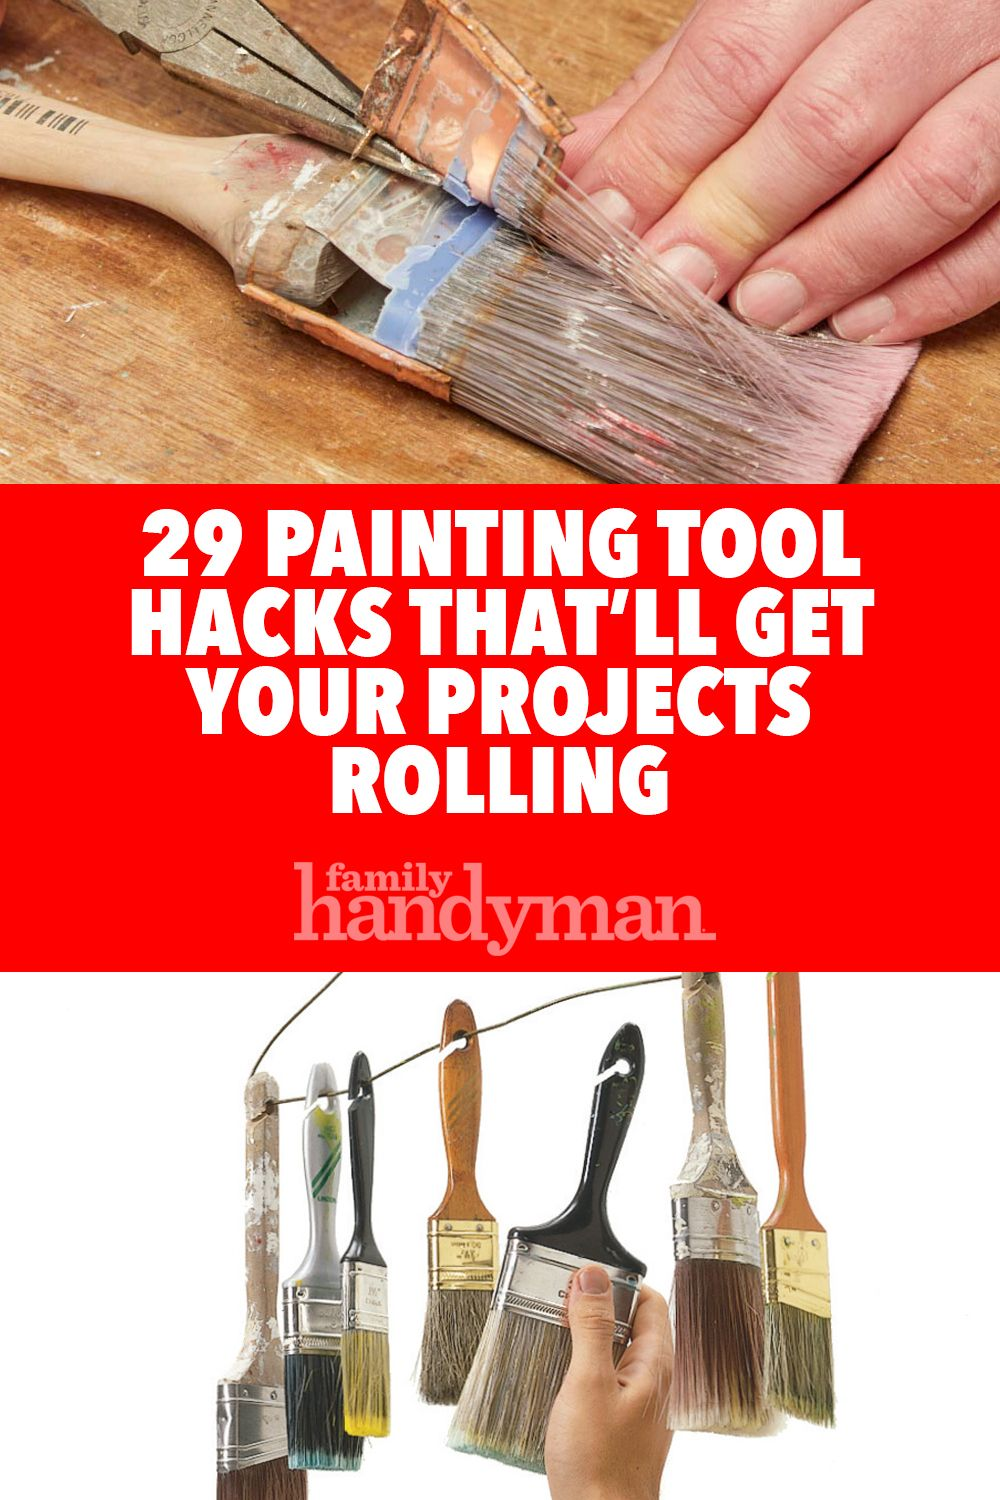 29 Painting Tool Hacks To Get Your Projects Rollin